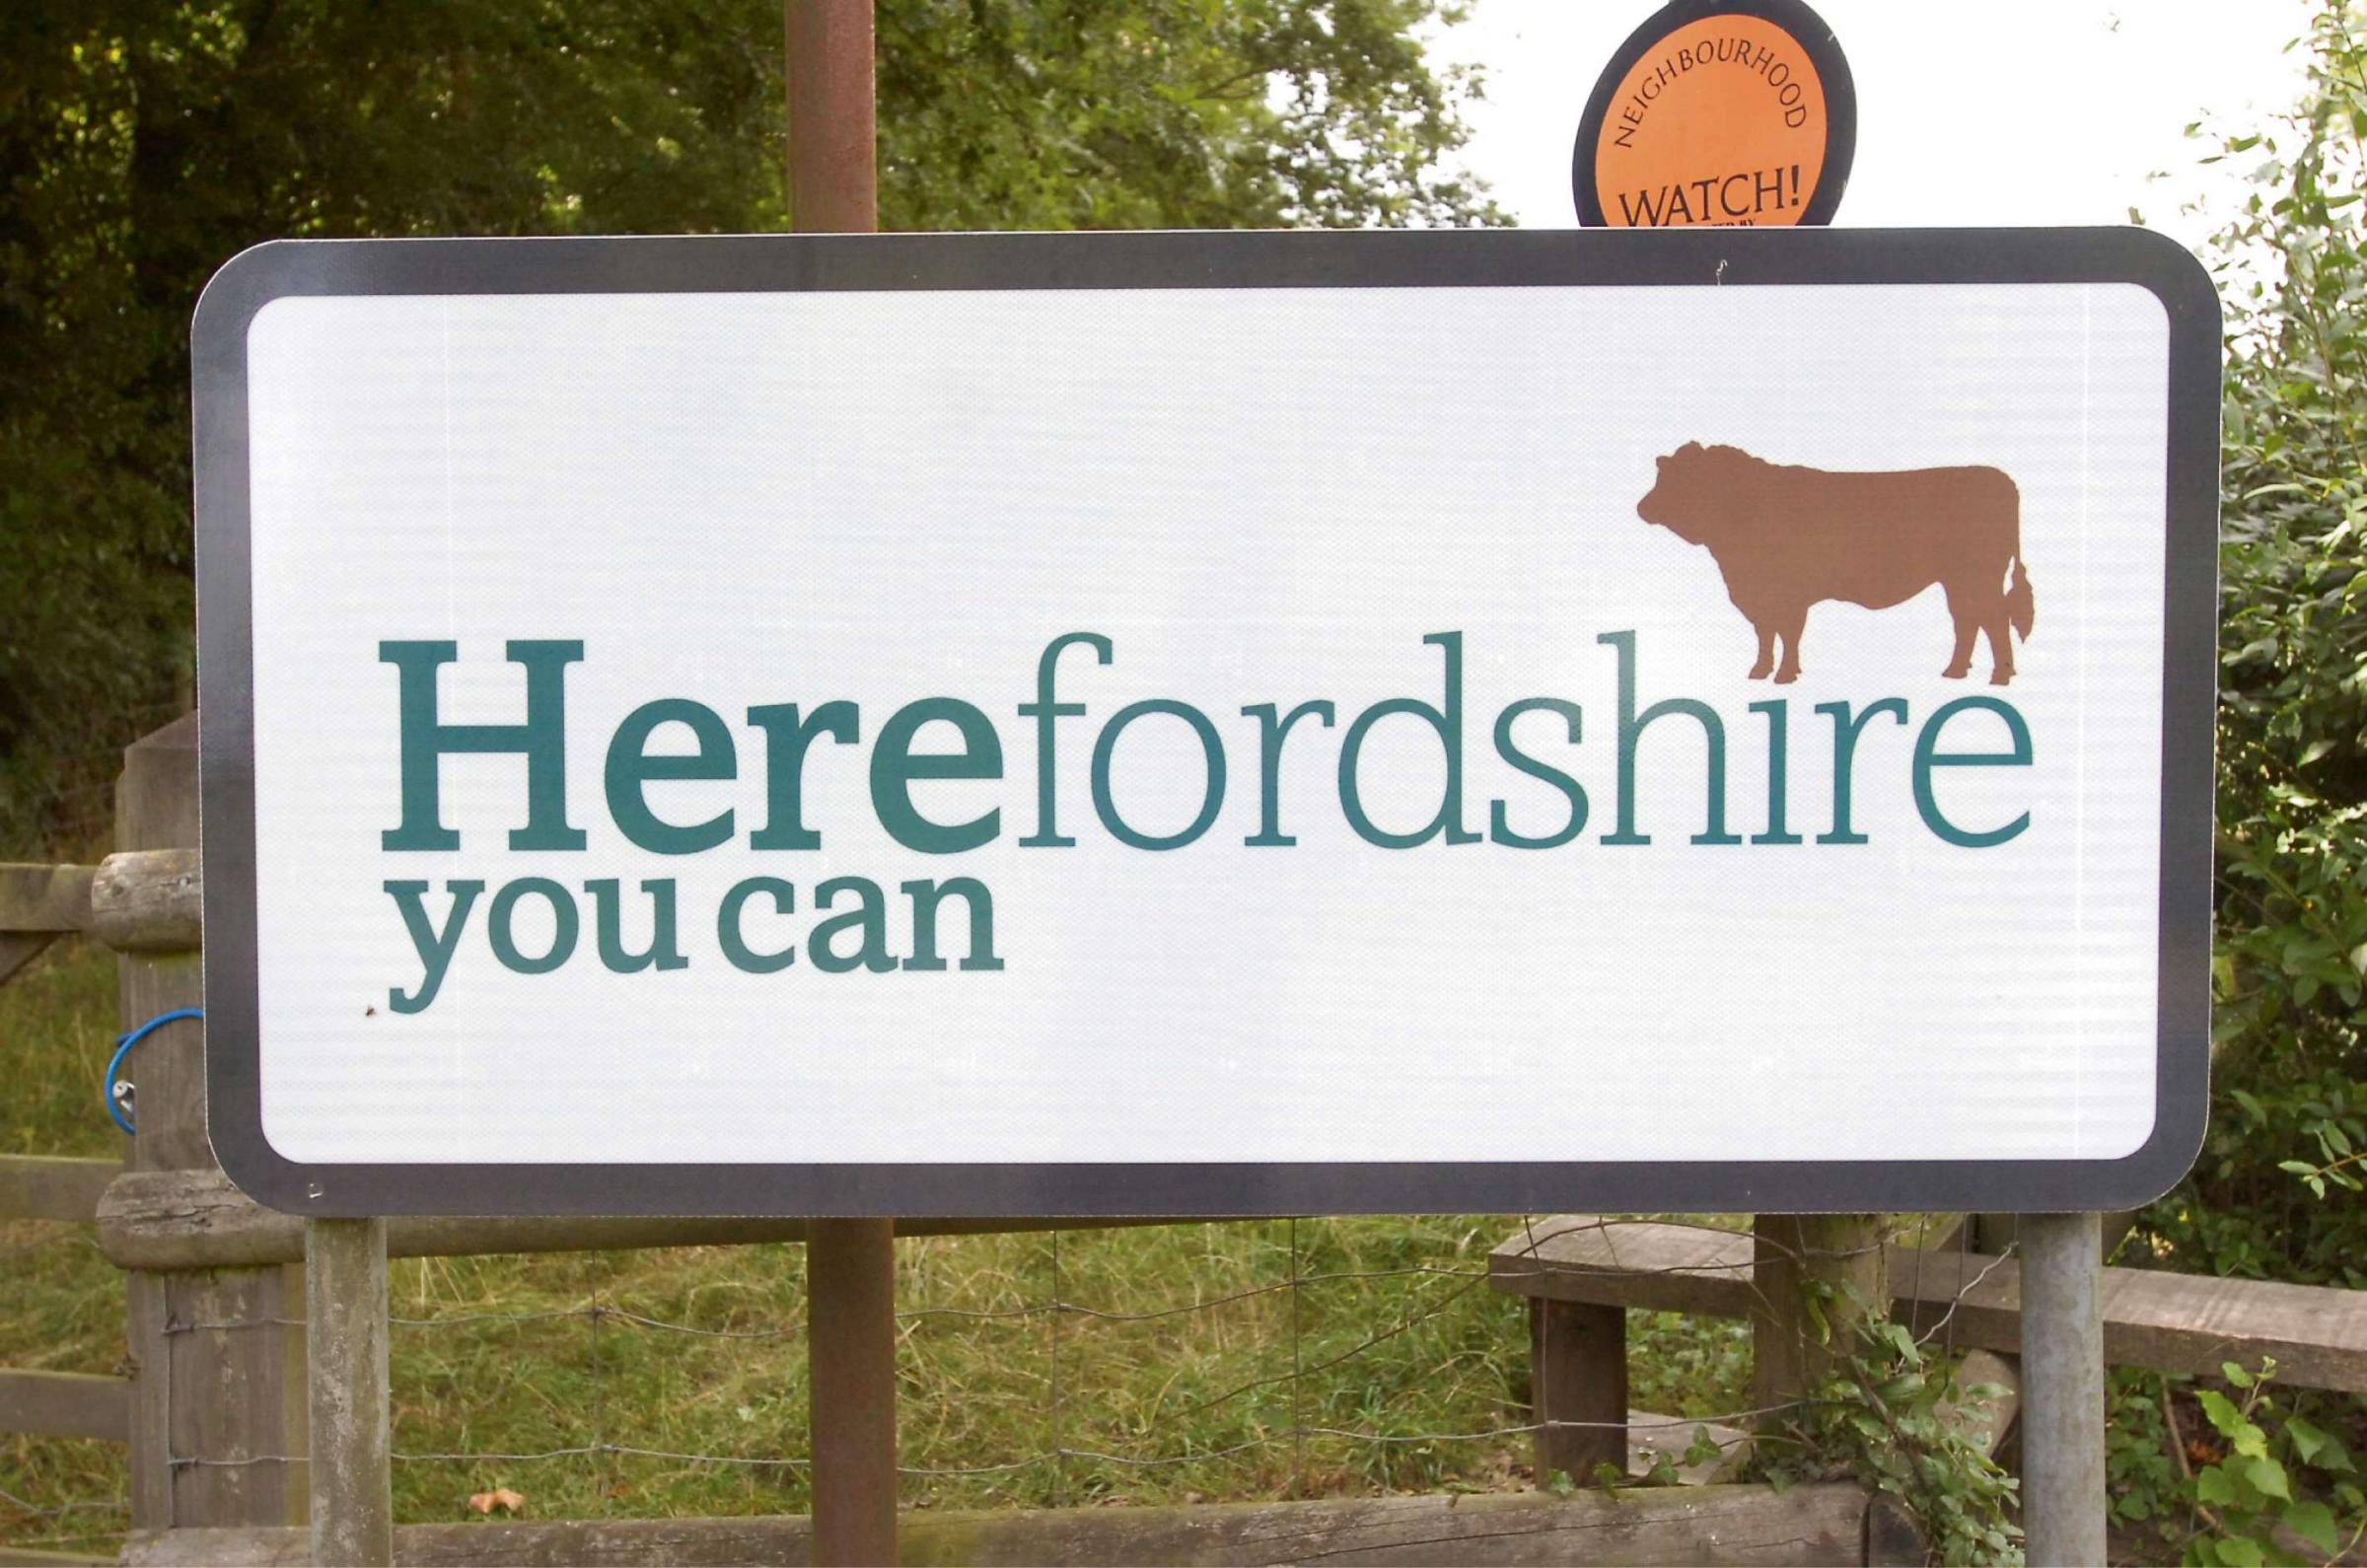 Herefordshire you can sign.133405-2 (3872602)